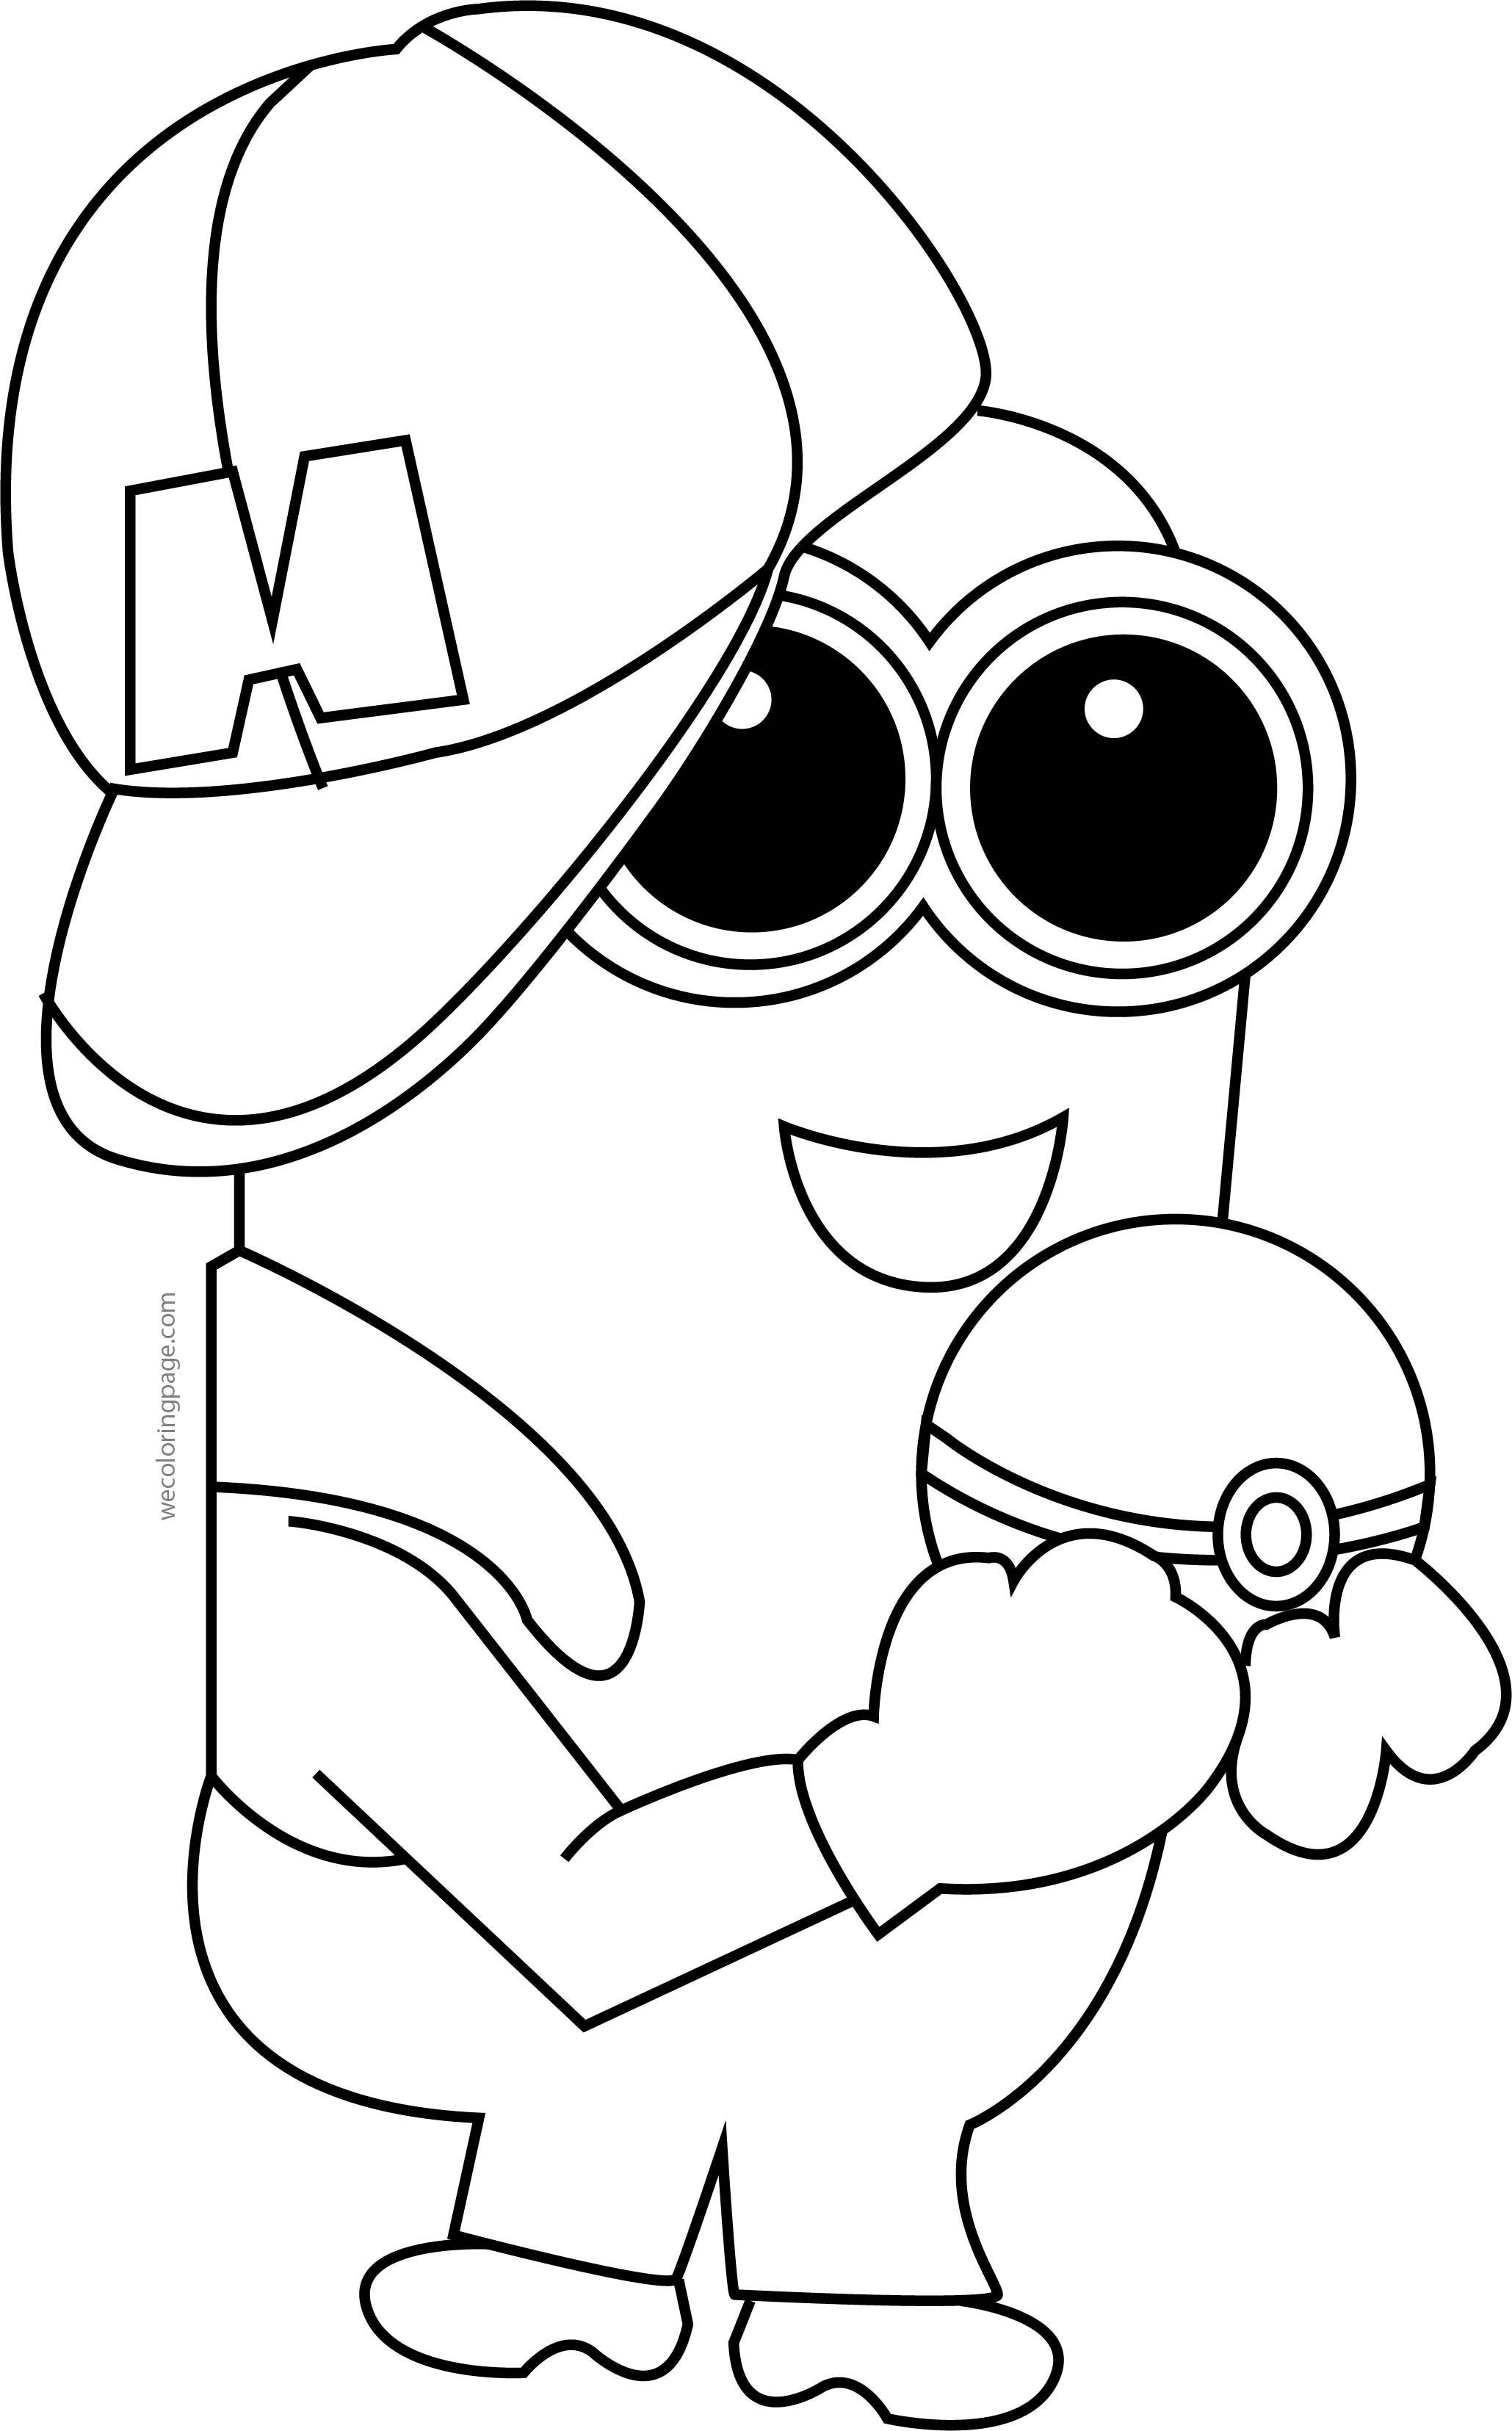 Minion pikachu pokemon coloring page for Pikachu color page